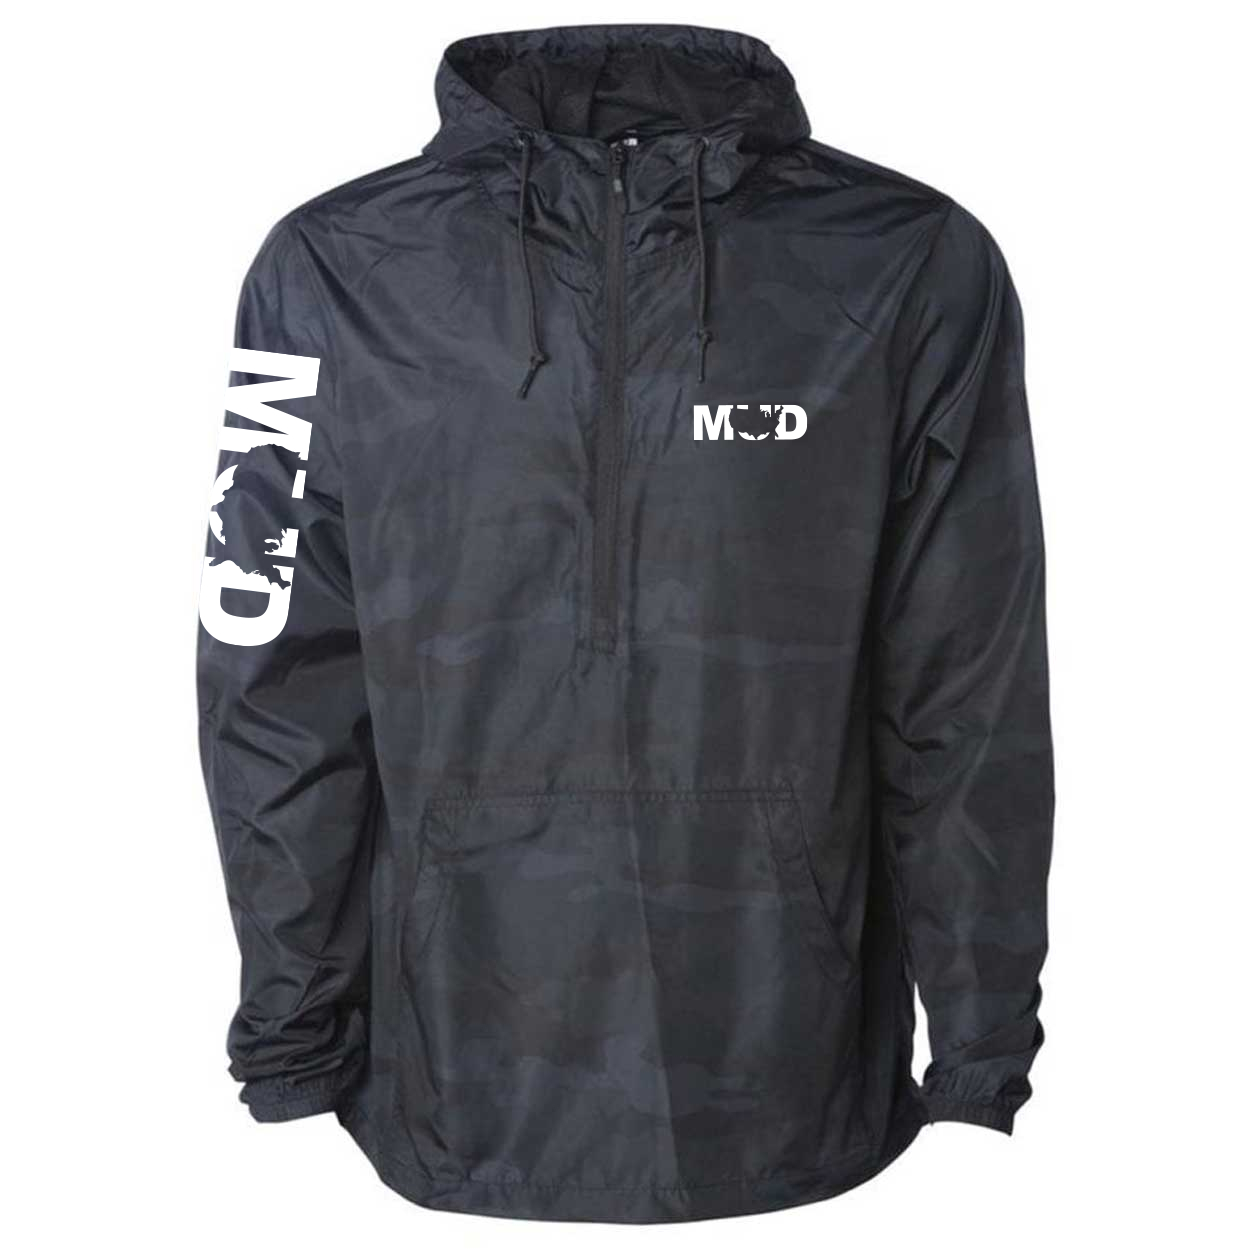 Mud United States Classic Lightweight Pullover Windbreaker Black Camo (White Logo)